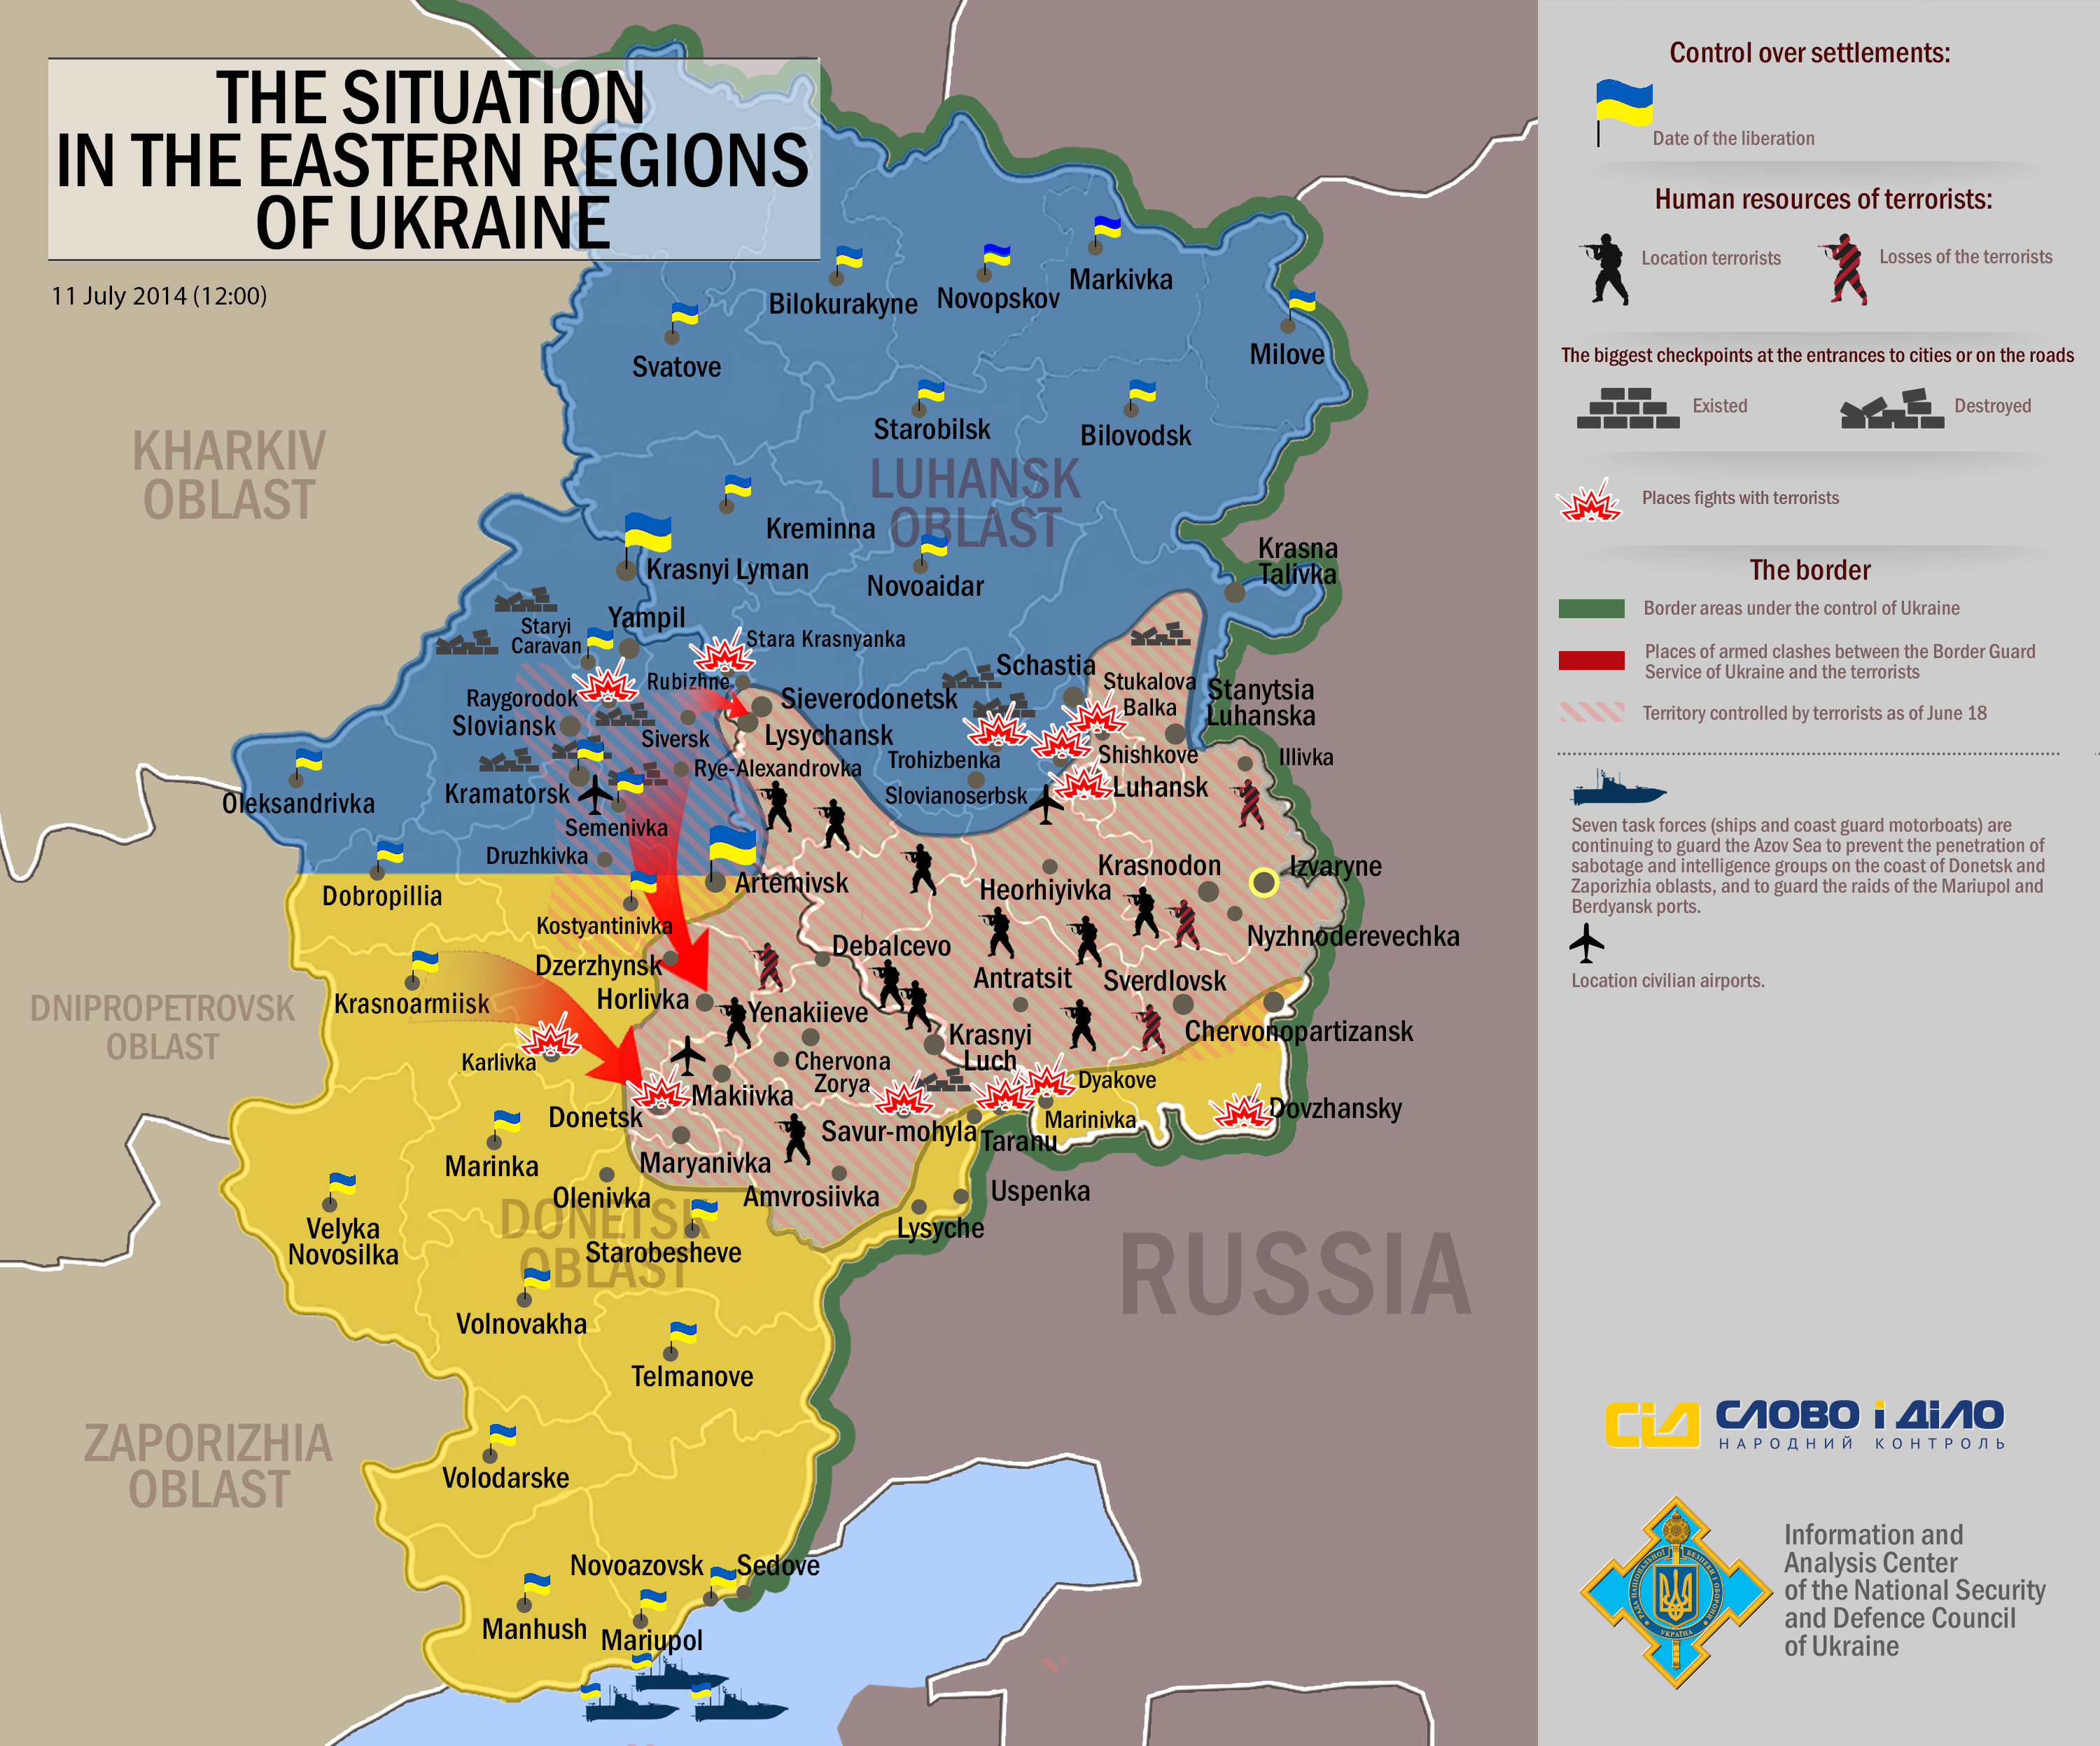 The situation in the eastern regions of Ukraine on 11 July 2014. Image courtesy of the National Security and Defense Council of Ukraine.